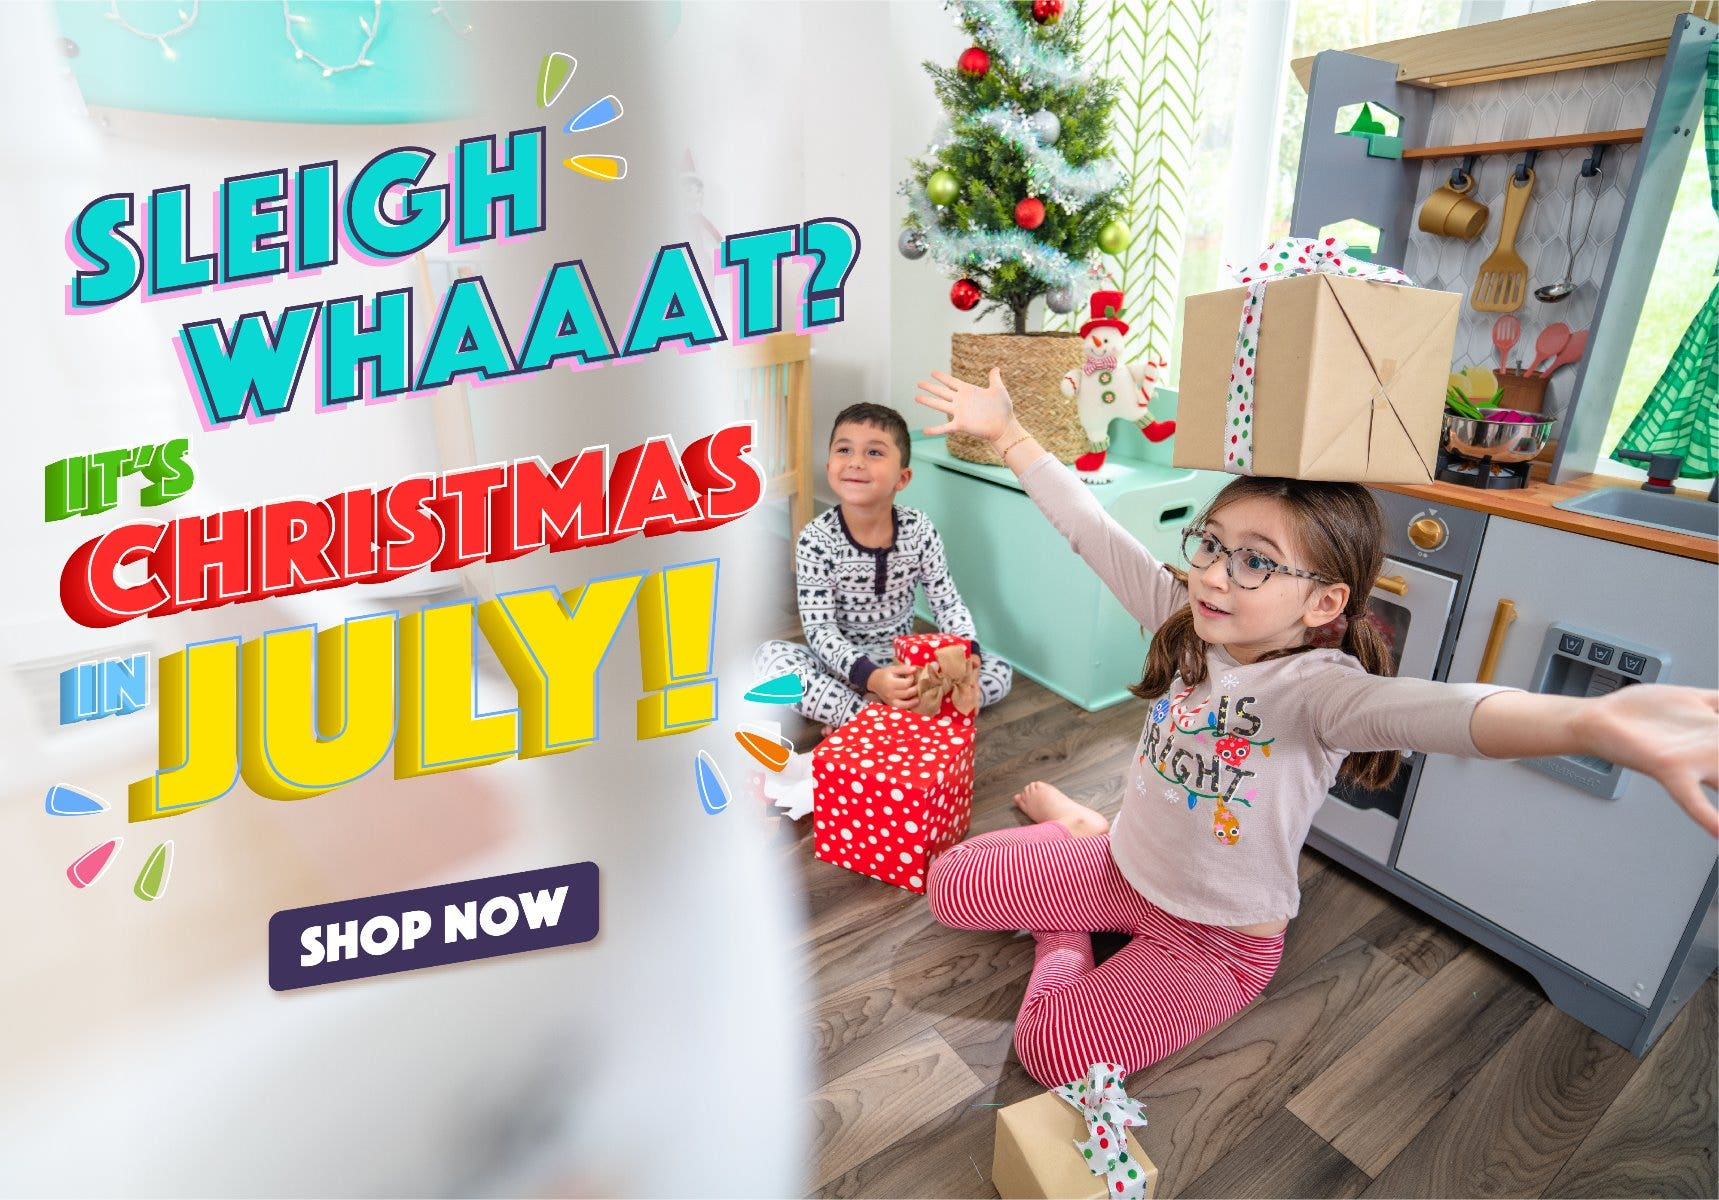 kids playing with KidKraft play kitchen with holiday decorations